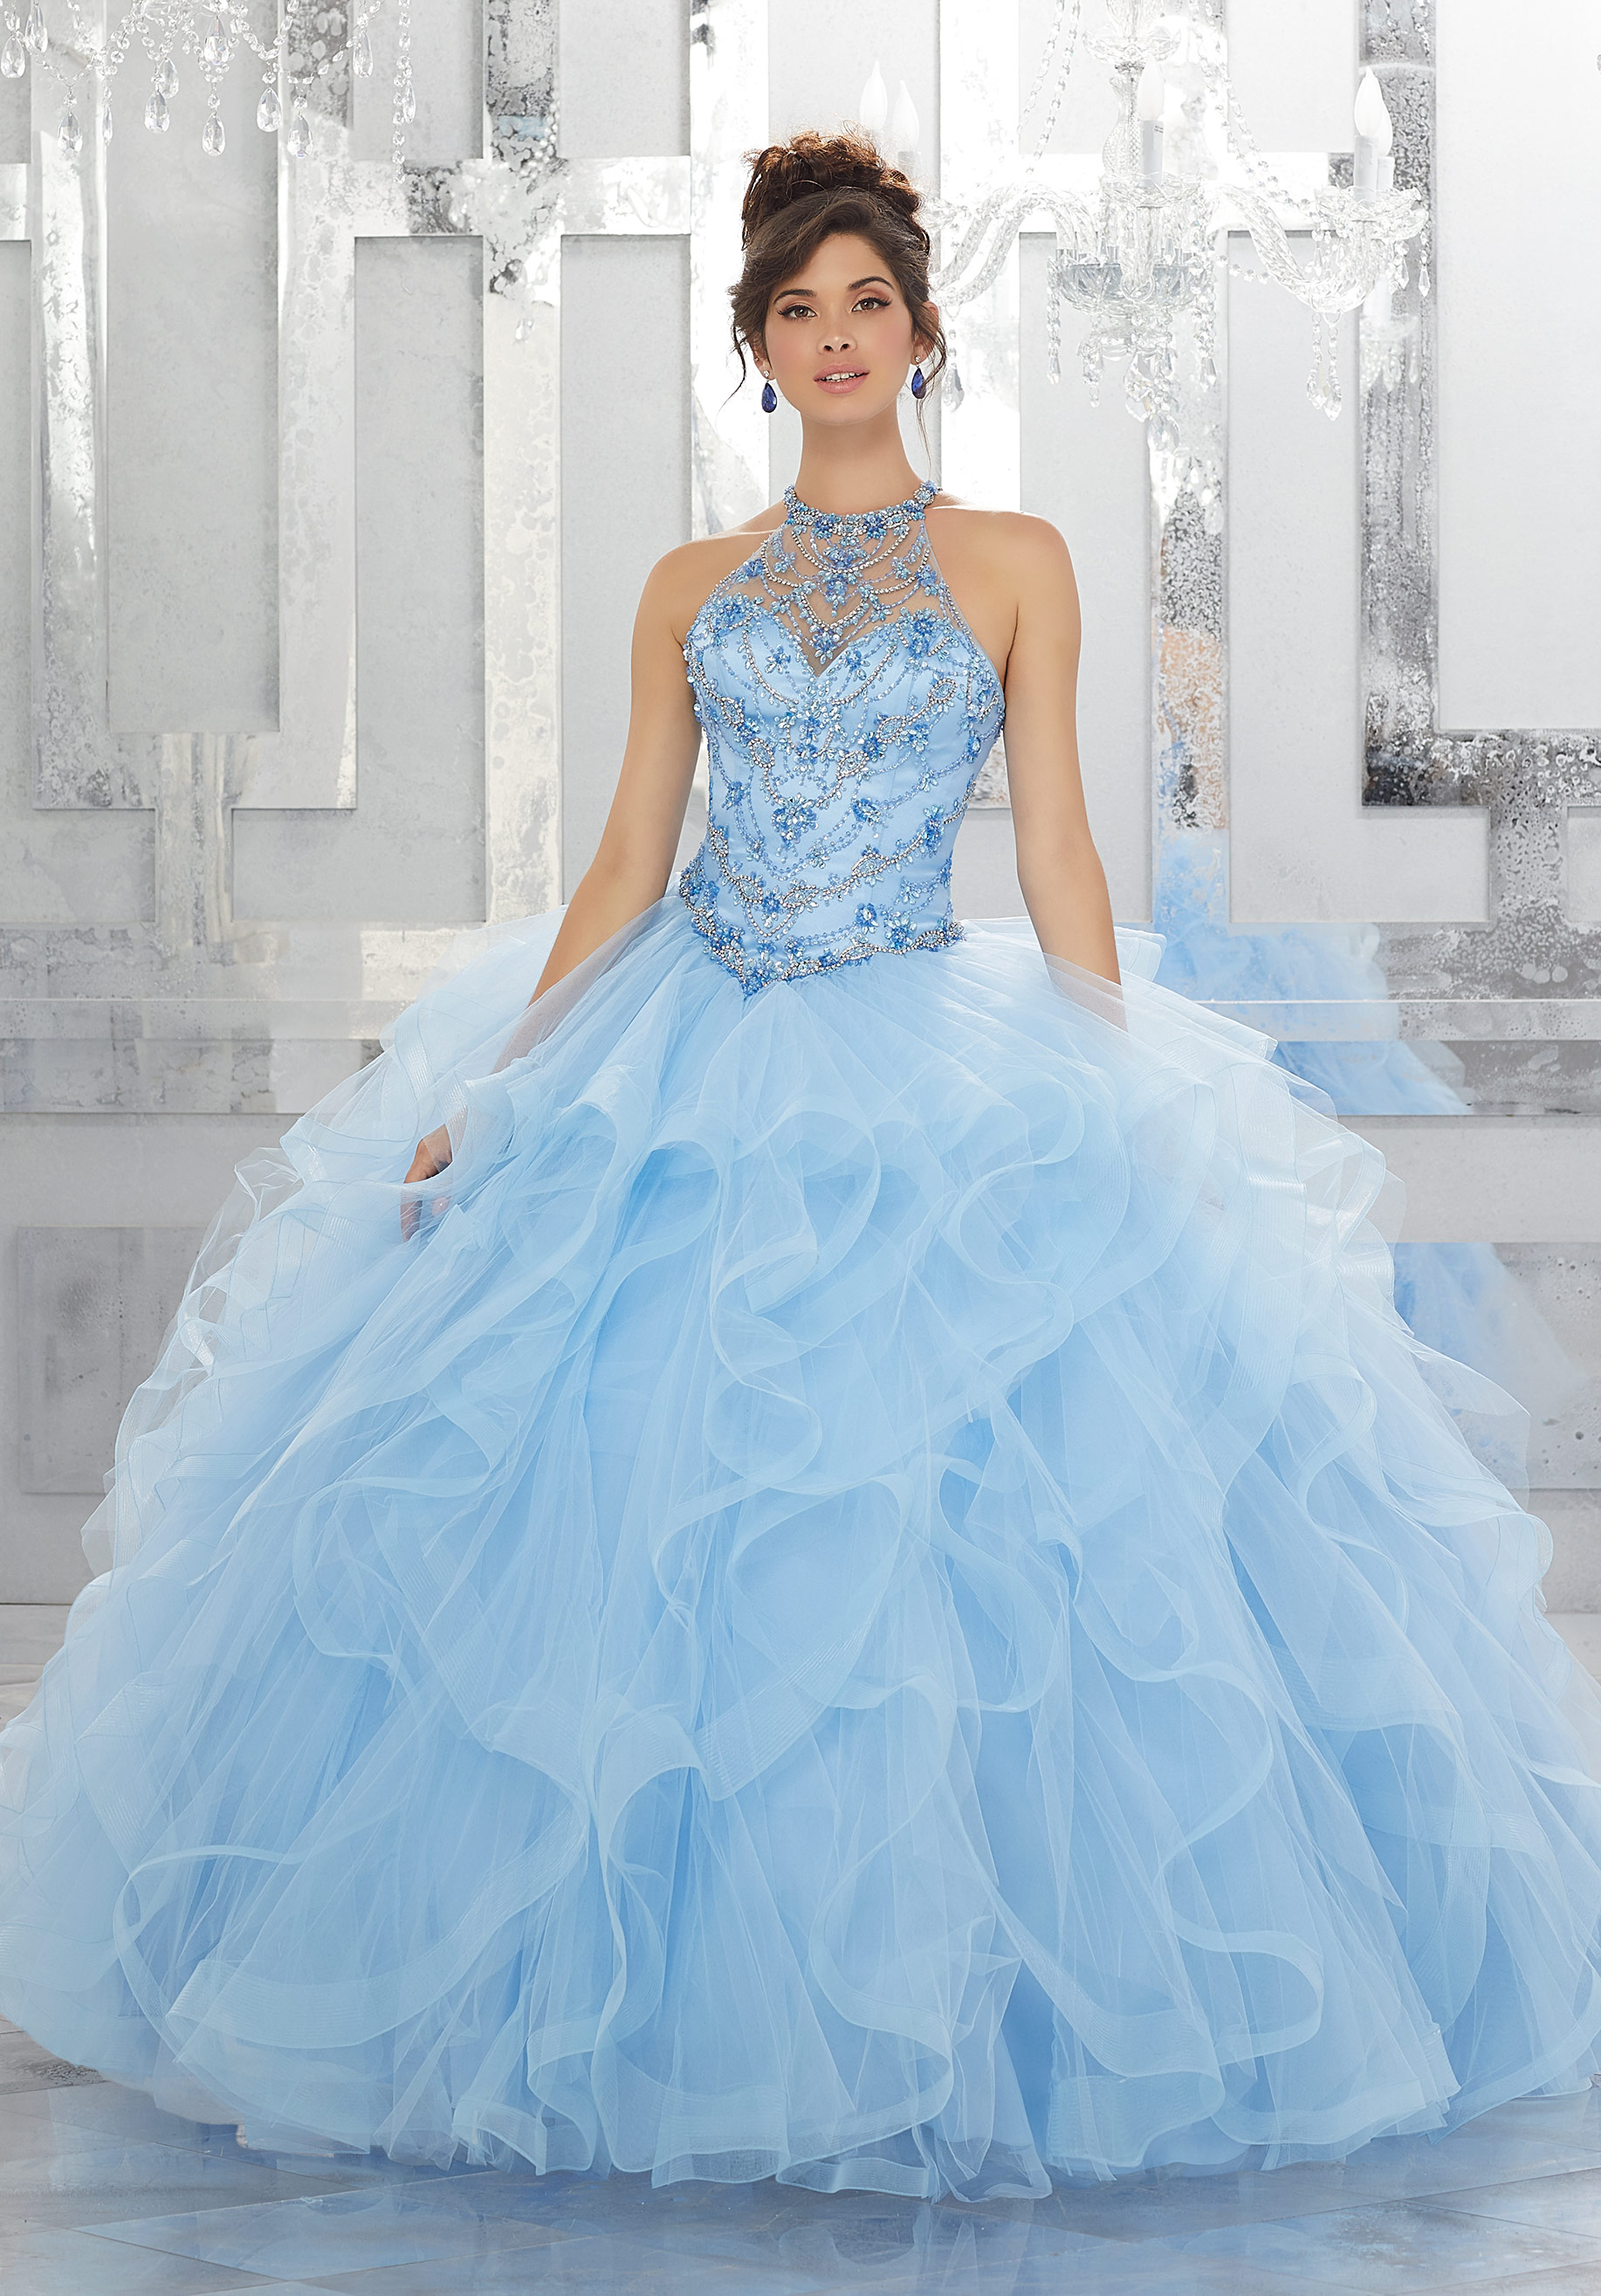 89154 Quinceanera Dresses, Vizcaya Collection - Dresses by Russo Boston